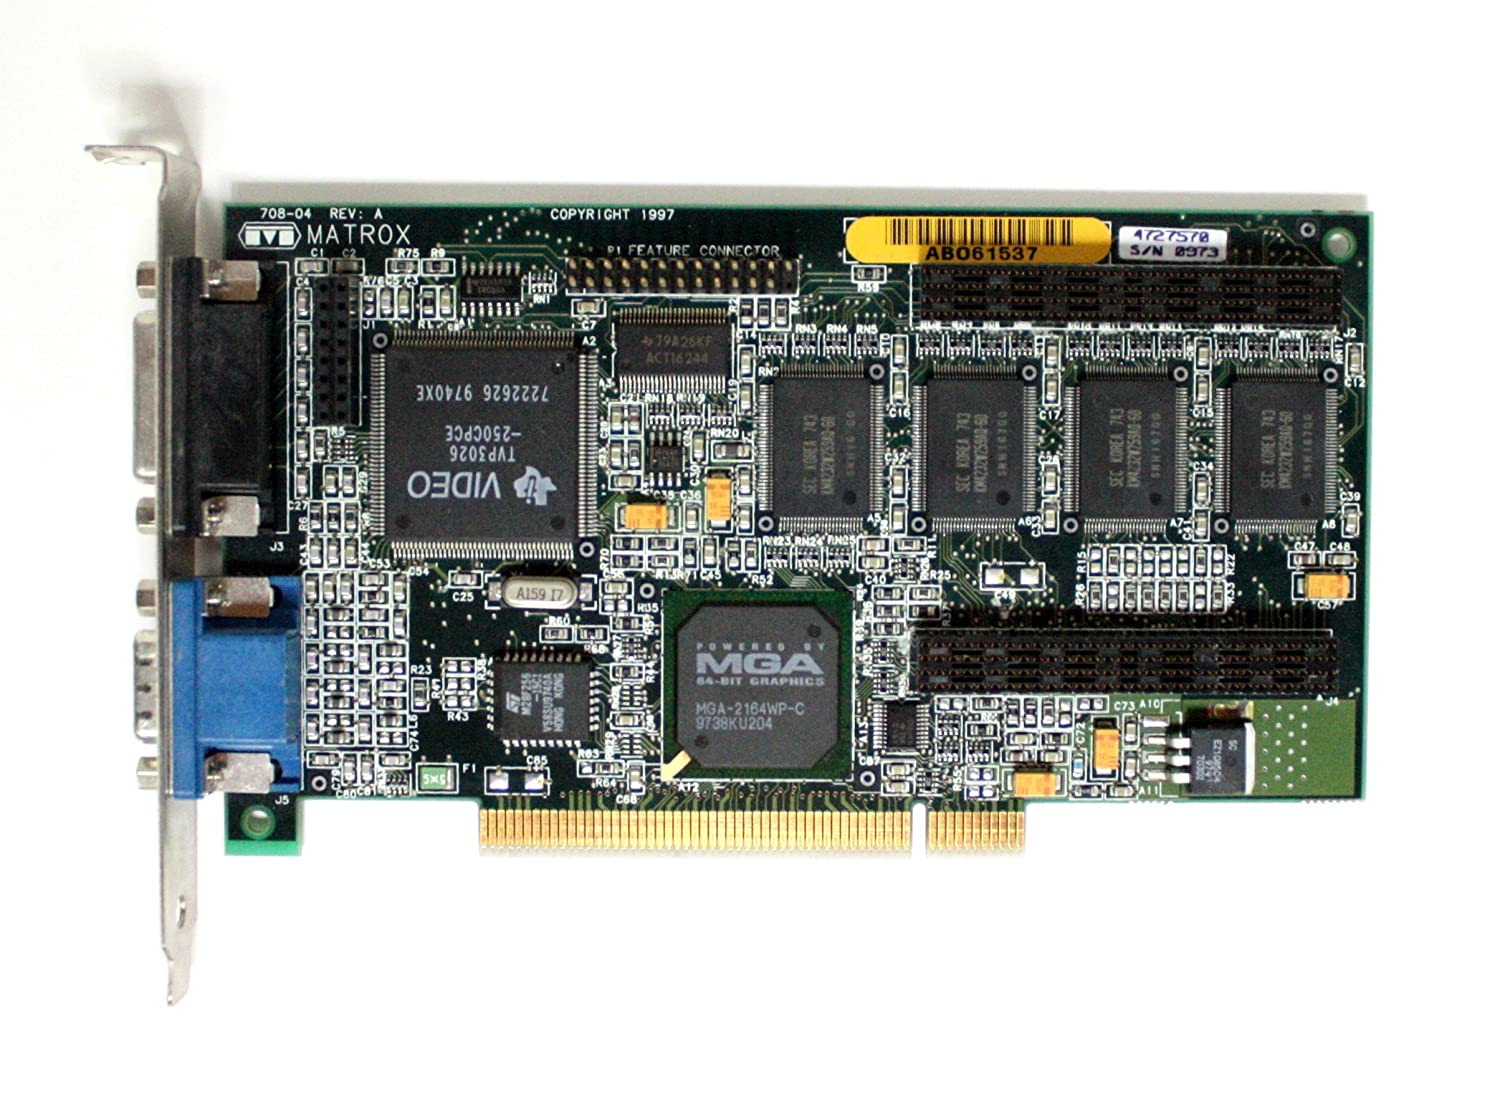 MATROX MILLENNIUM II PCI WINDOWS 10 DRIVER DOWNLOAD